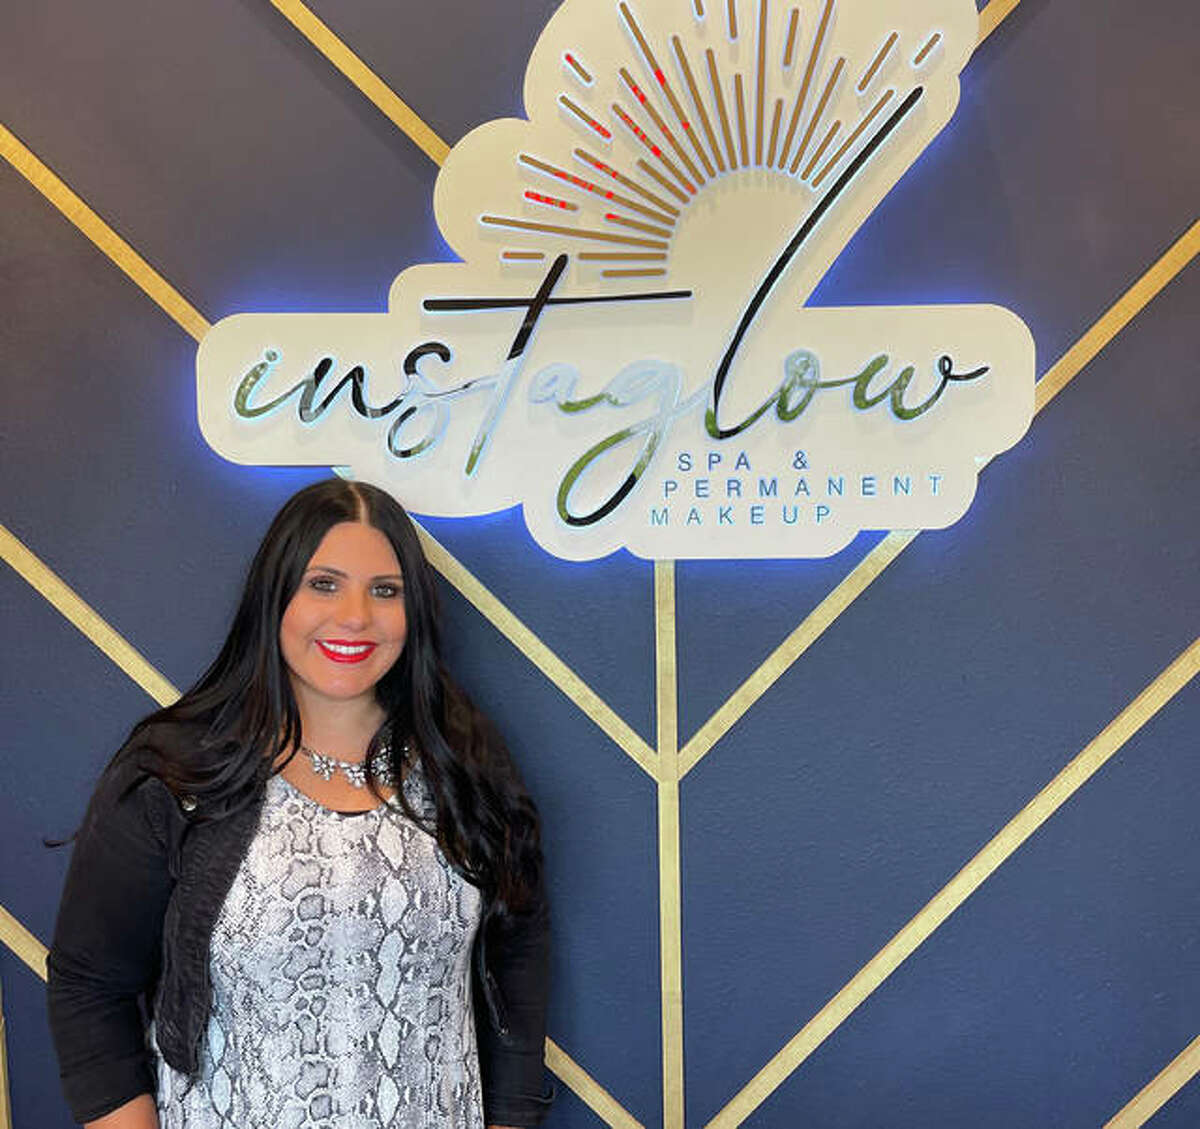 Lauren Strickland moves from Meraki Studios to her own skincare spa Instaglow Spa & Permanent Makeup on S. State Route 157 in Edwardsville.